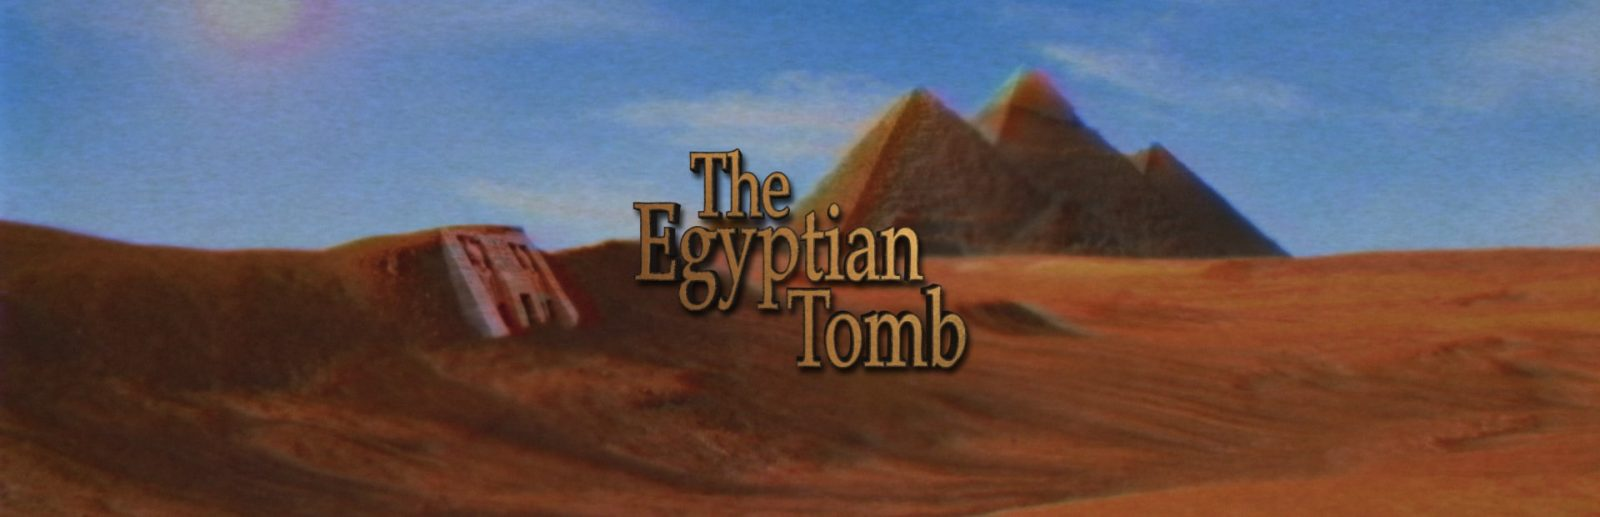 "Clue chase's egyptian tomb banner, the room title ""egyptian tomb"" is displayed over a background of pyramids and desert"